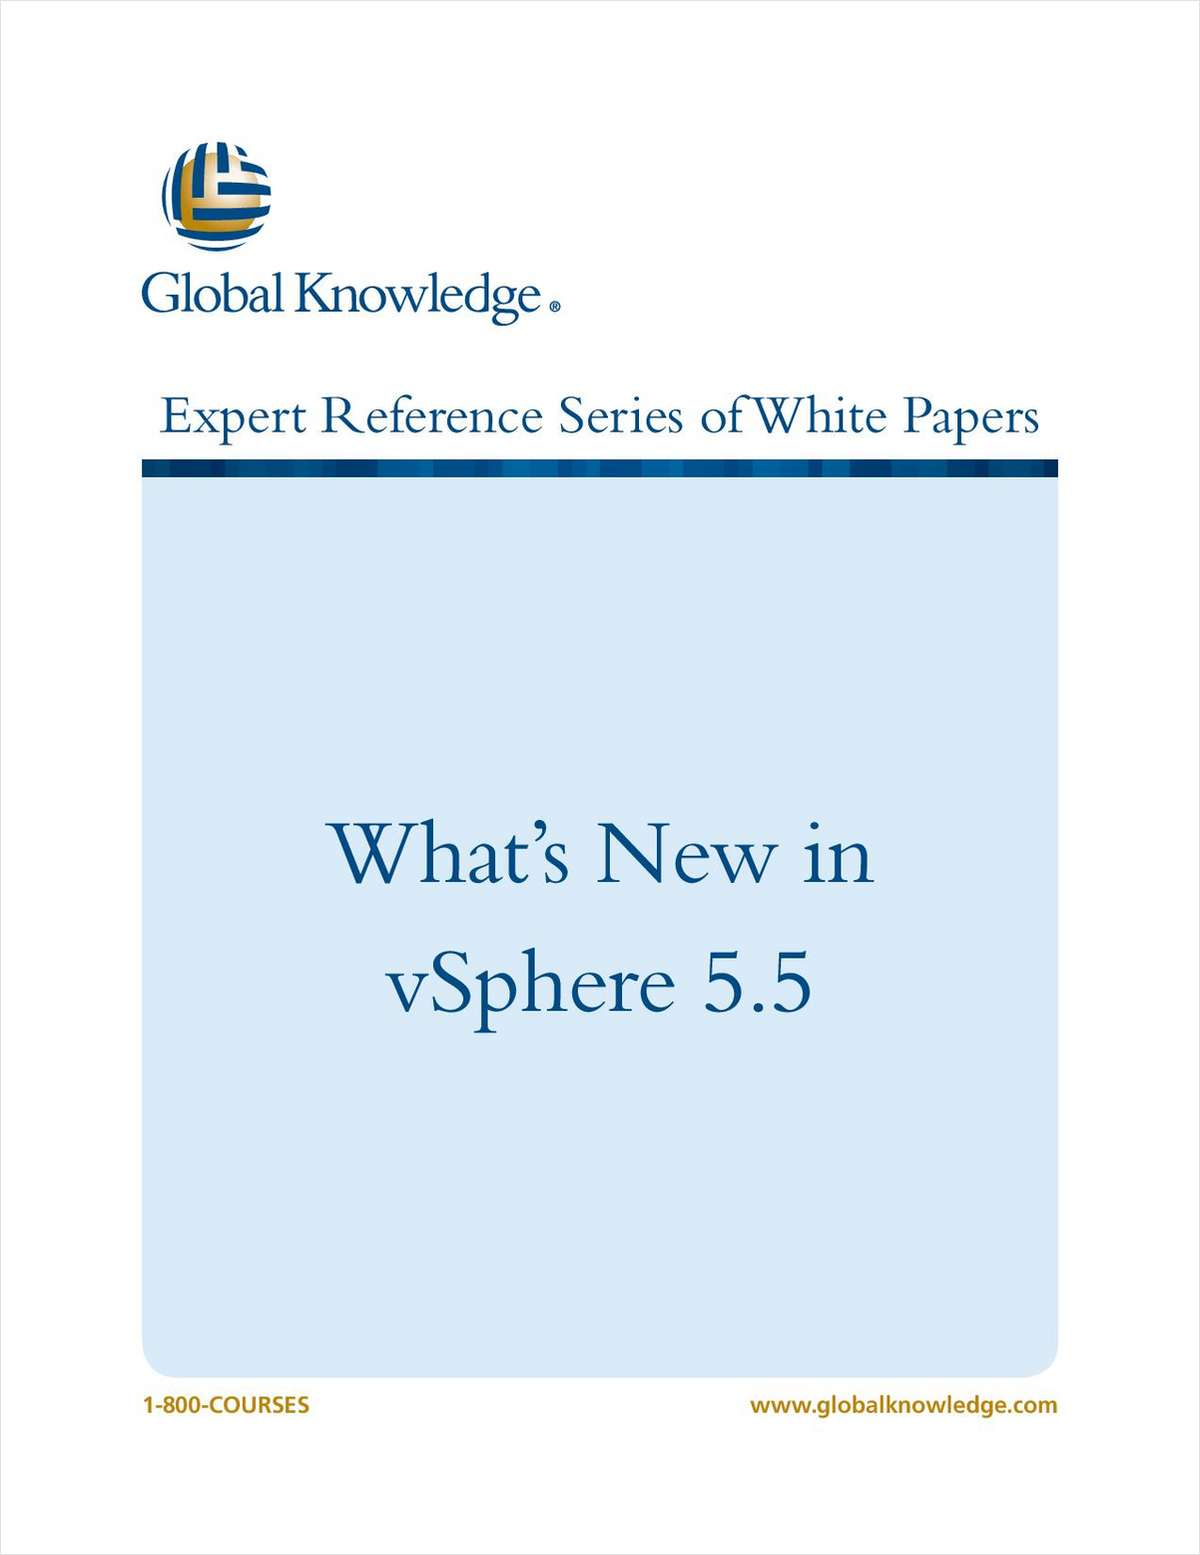 What's New in vSphere 5.5